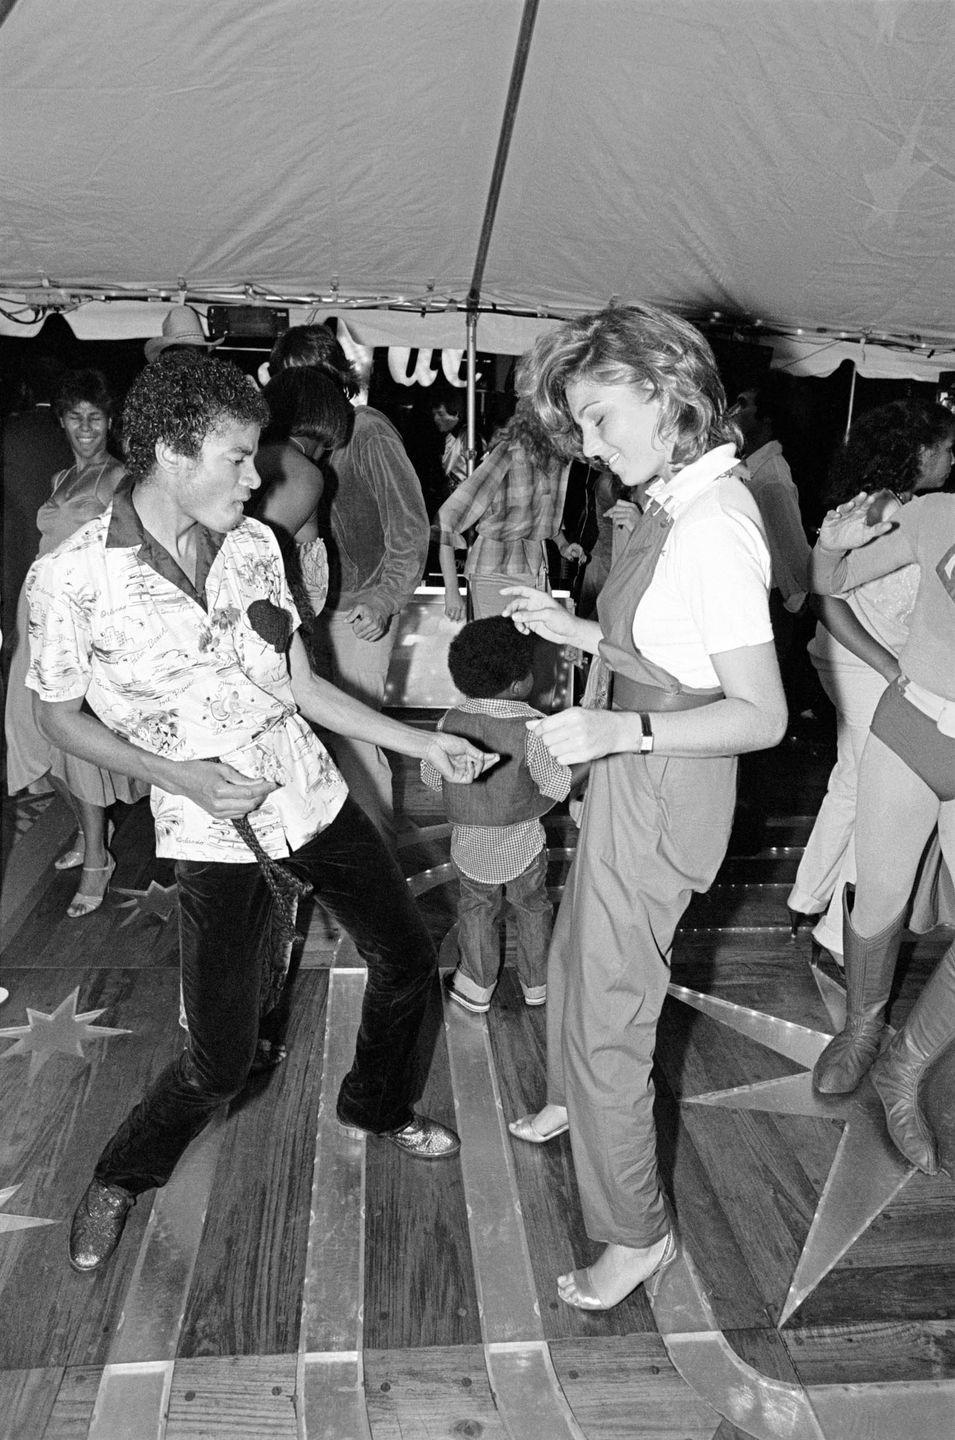 <p>Michael Jackson dances with Tatum O'Neal at a party to celebrate the Jacksons' gold records on June 21, 1979.</p>